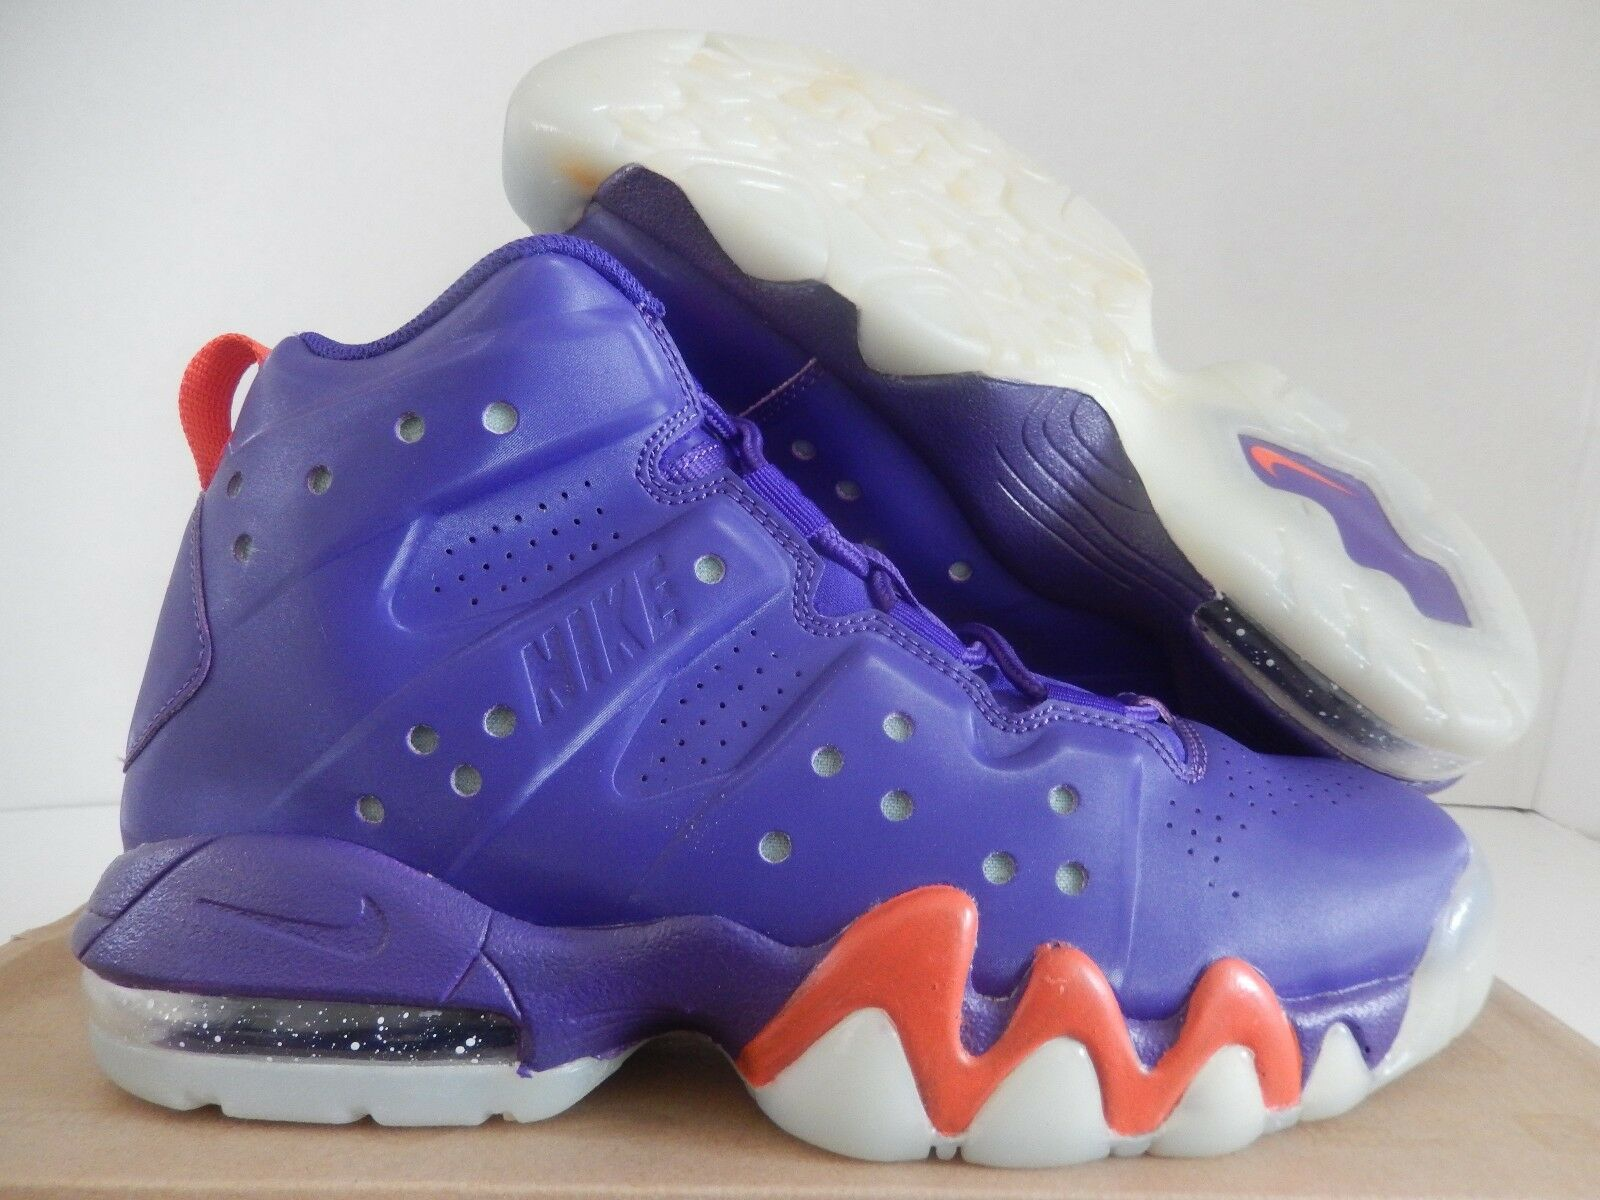 NIKE AIR MAX BARKLEY (GS) COURT PURPLE SZ 6.5Y-femmes SZ 8 RARE [488245-500]